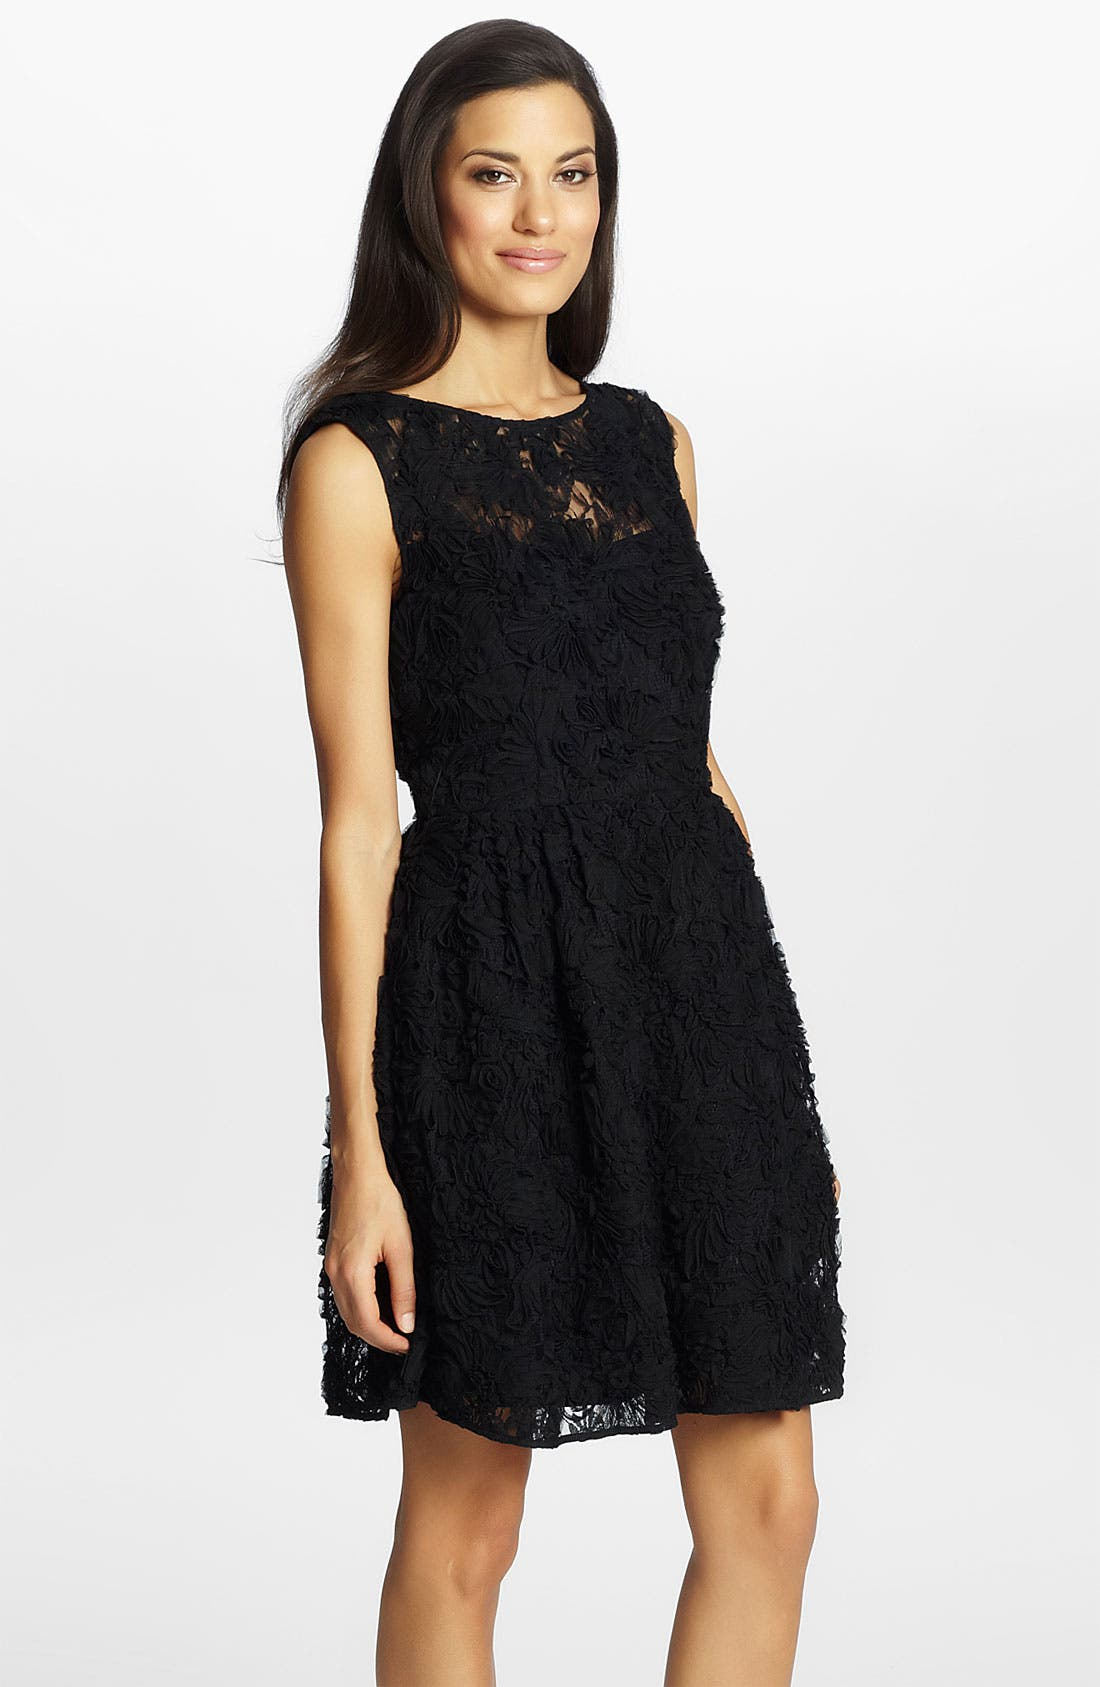 Alternate Image 1 Selected - Cynthia Steffe 'Trixie' Lace Fit & Flare Dress